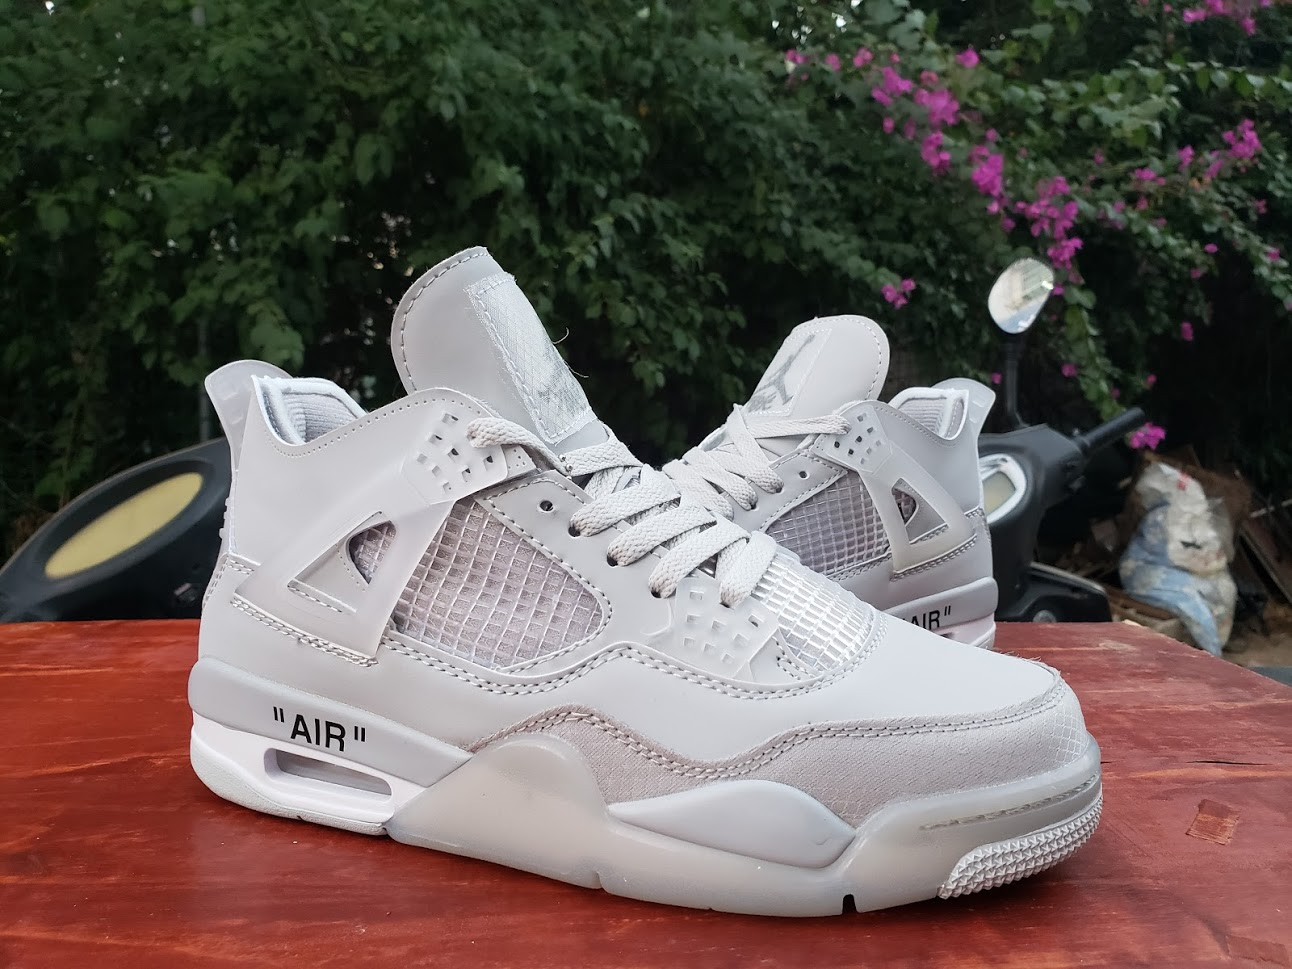 Air Jordan 4 Retro Sneakers For Men in 232566, cheap Jordan4, only $65!